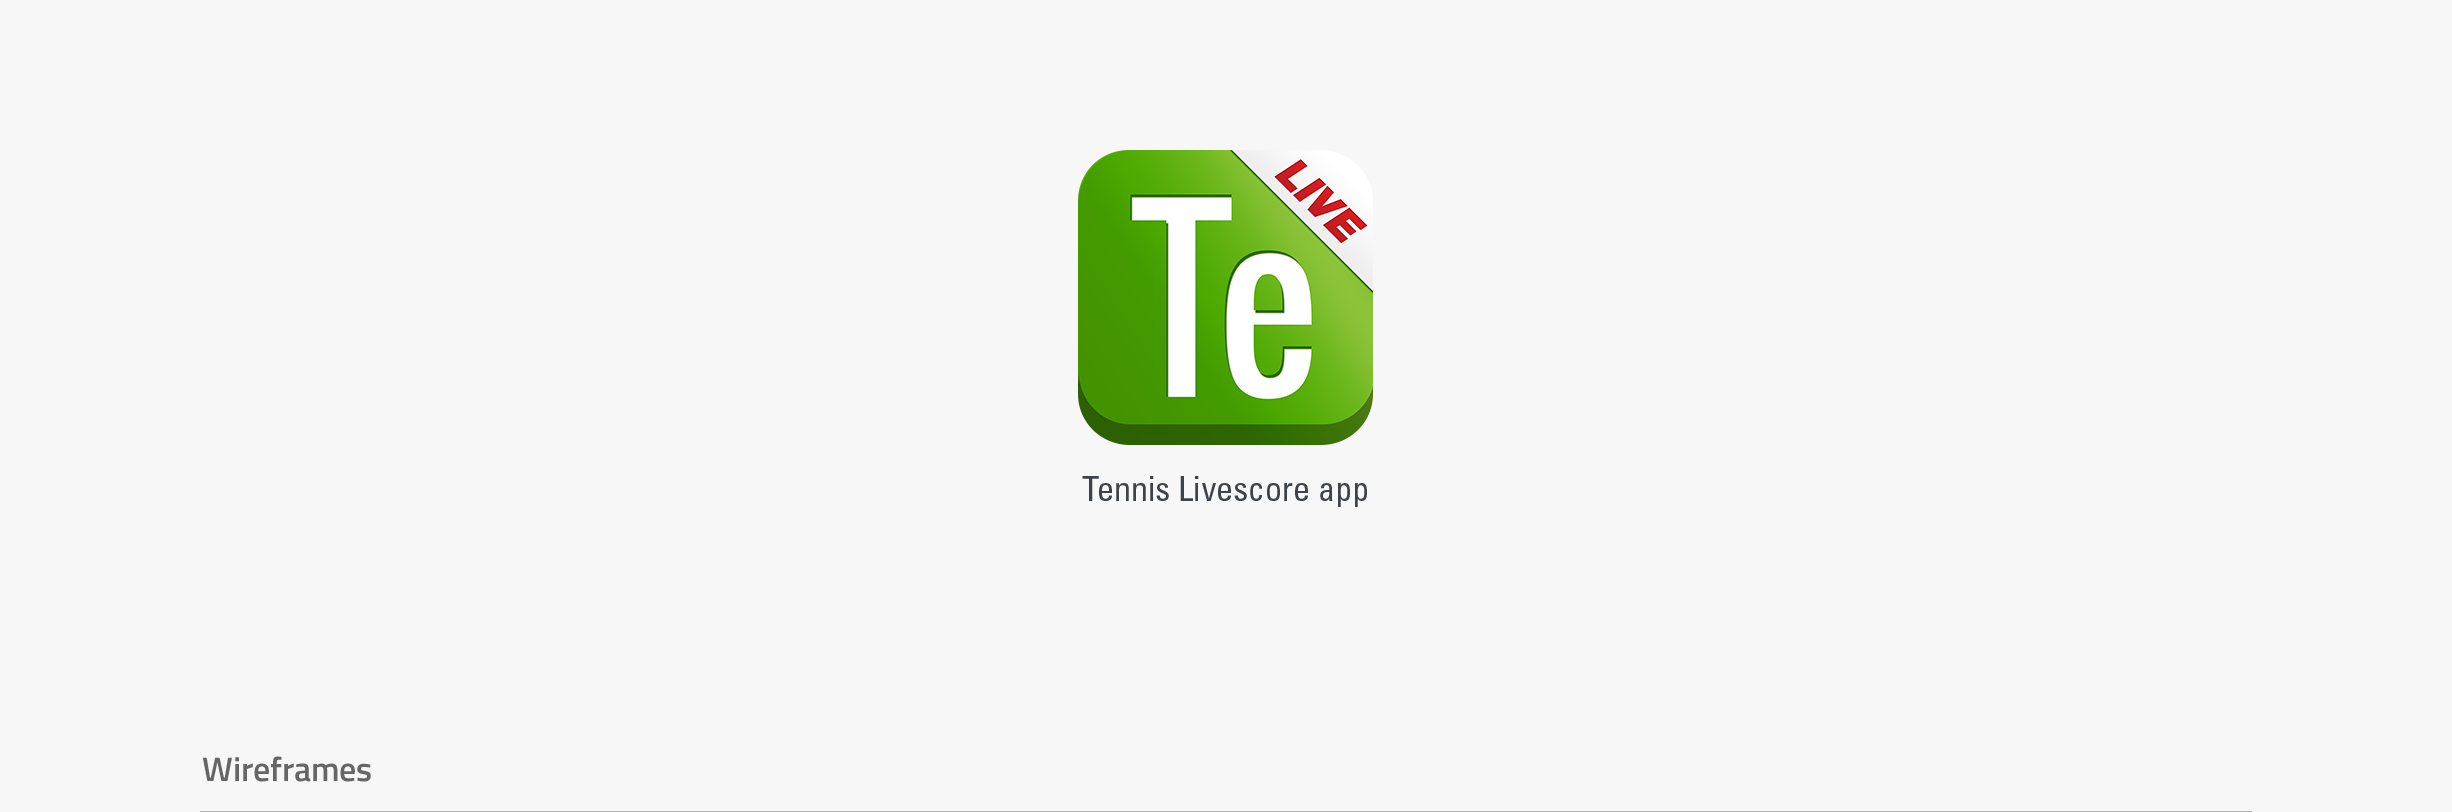 Tennis livescore - app icon